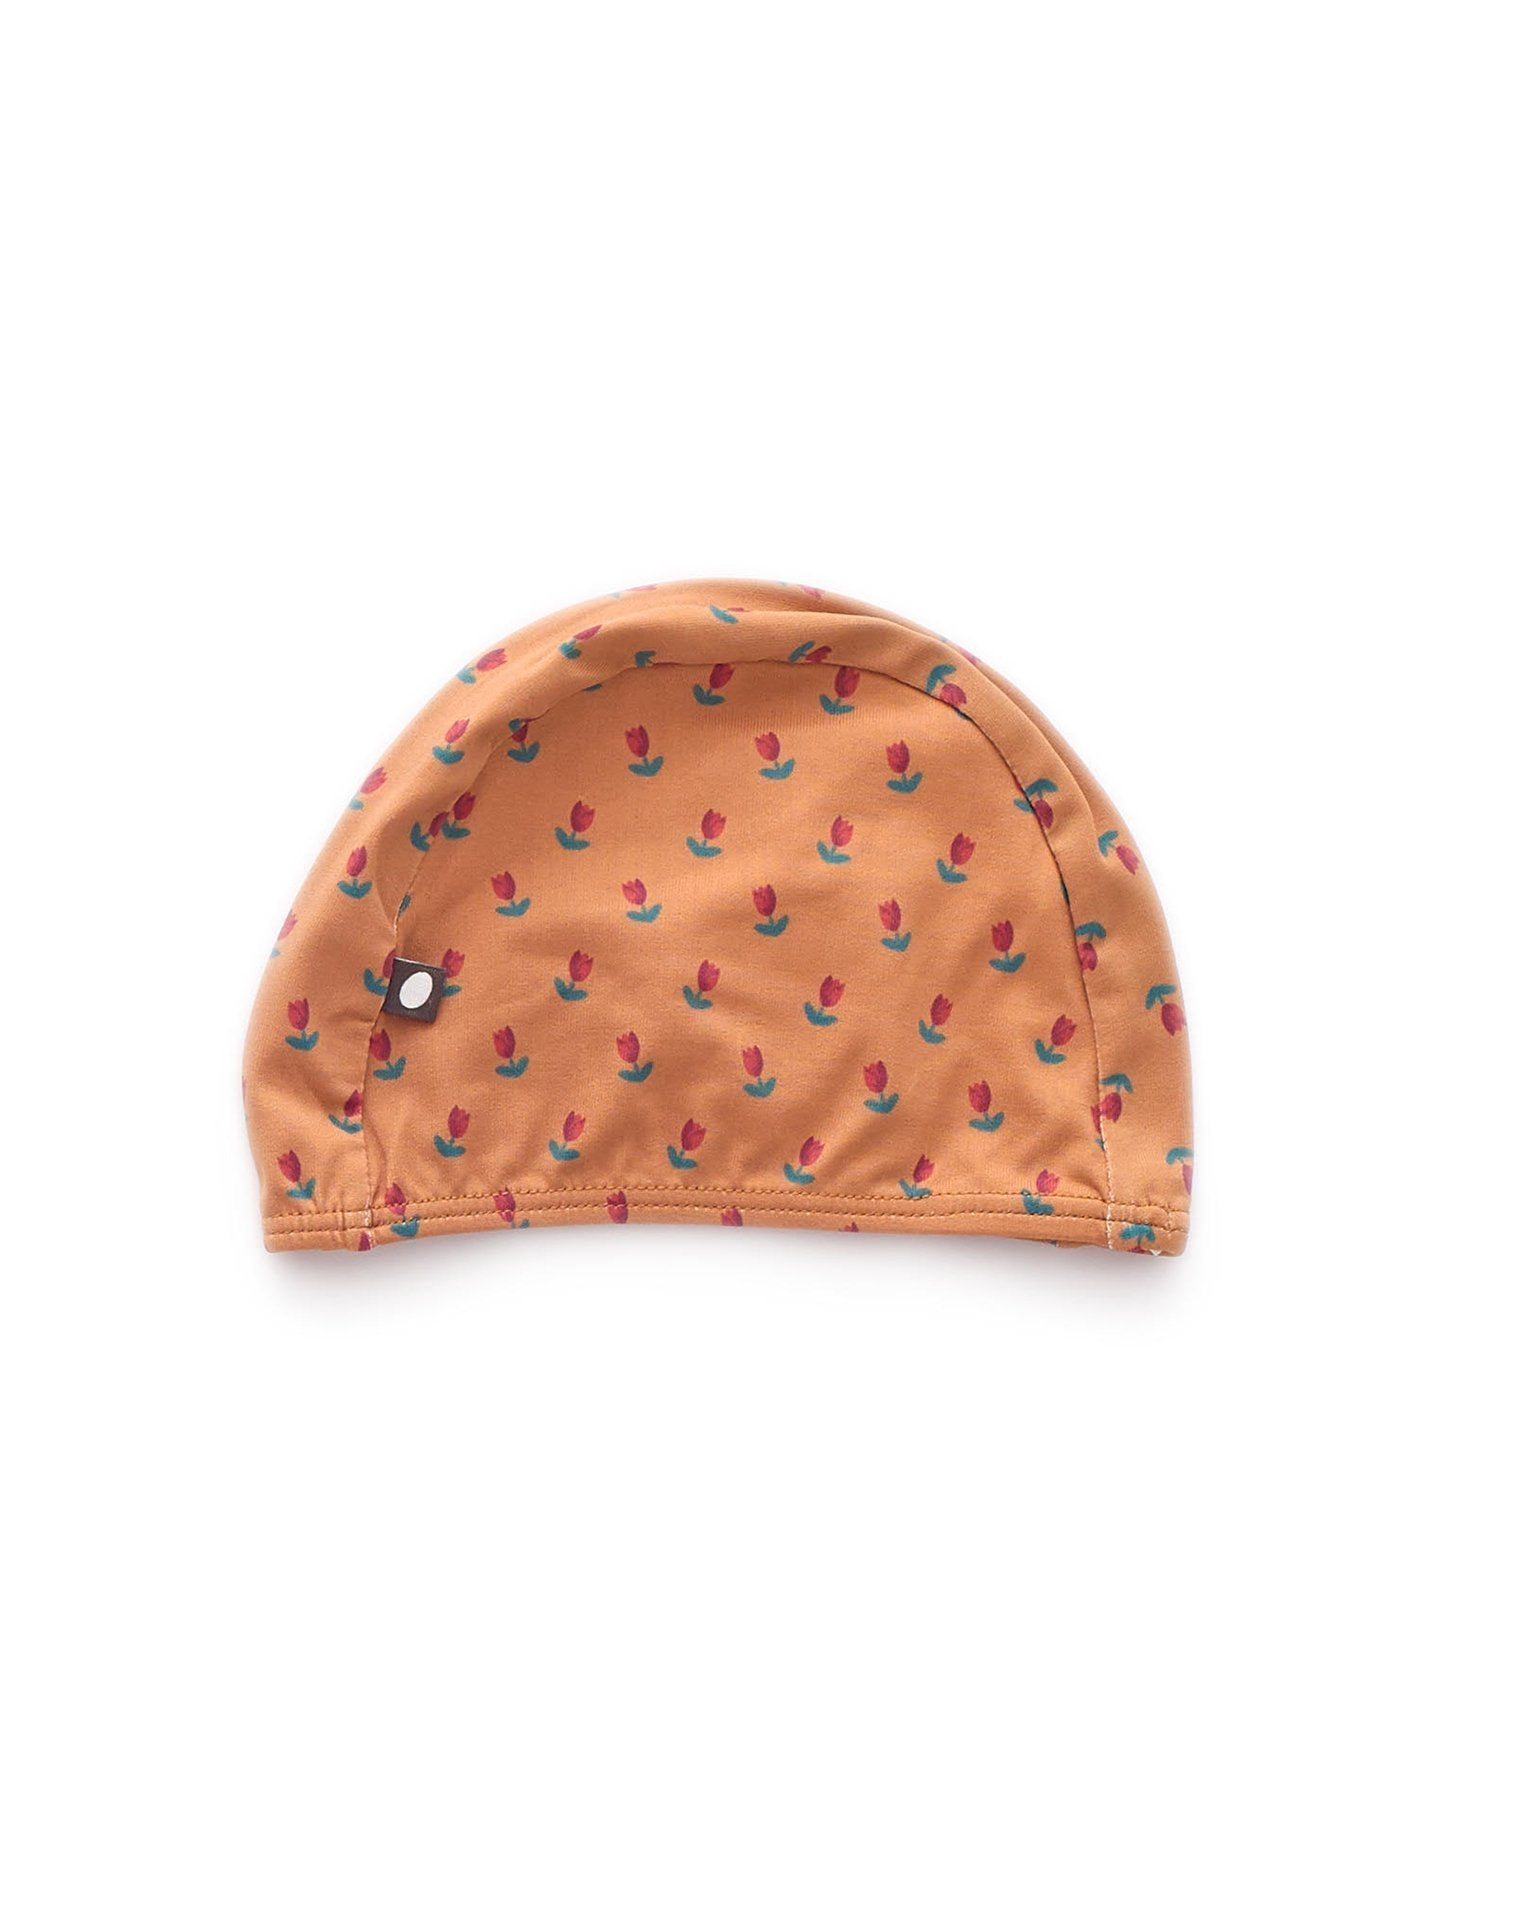 Little oeuf girl 0/3y bathing cap in rust + tulip